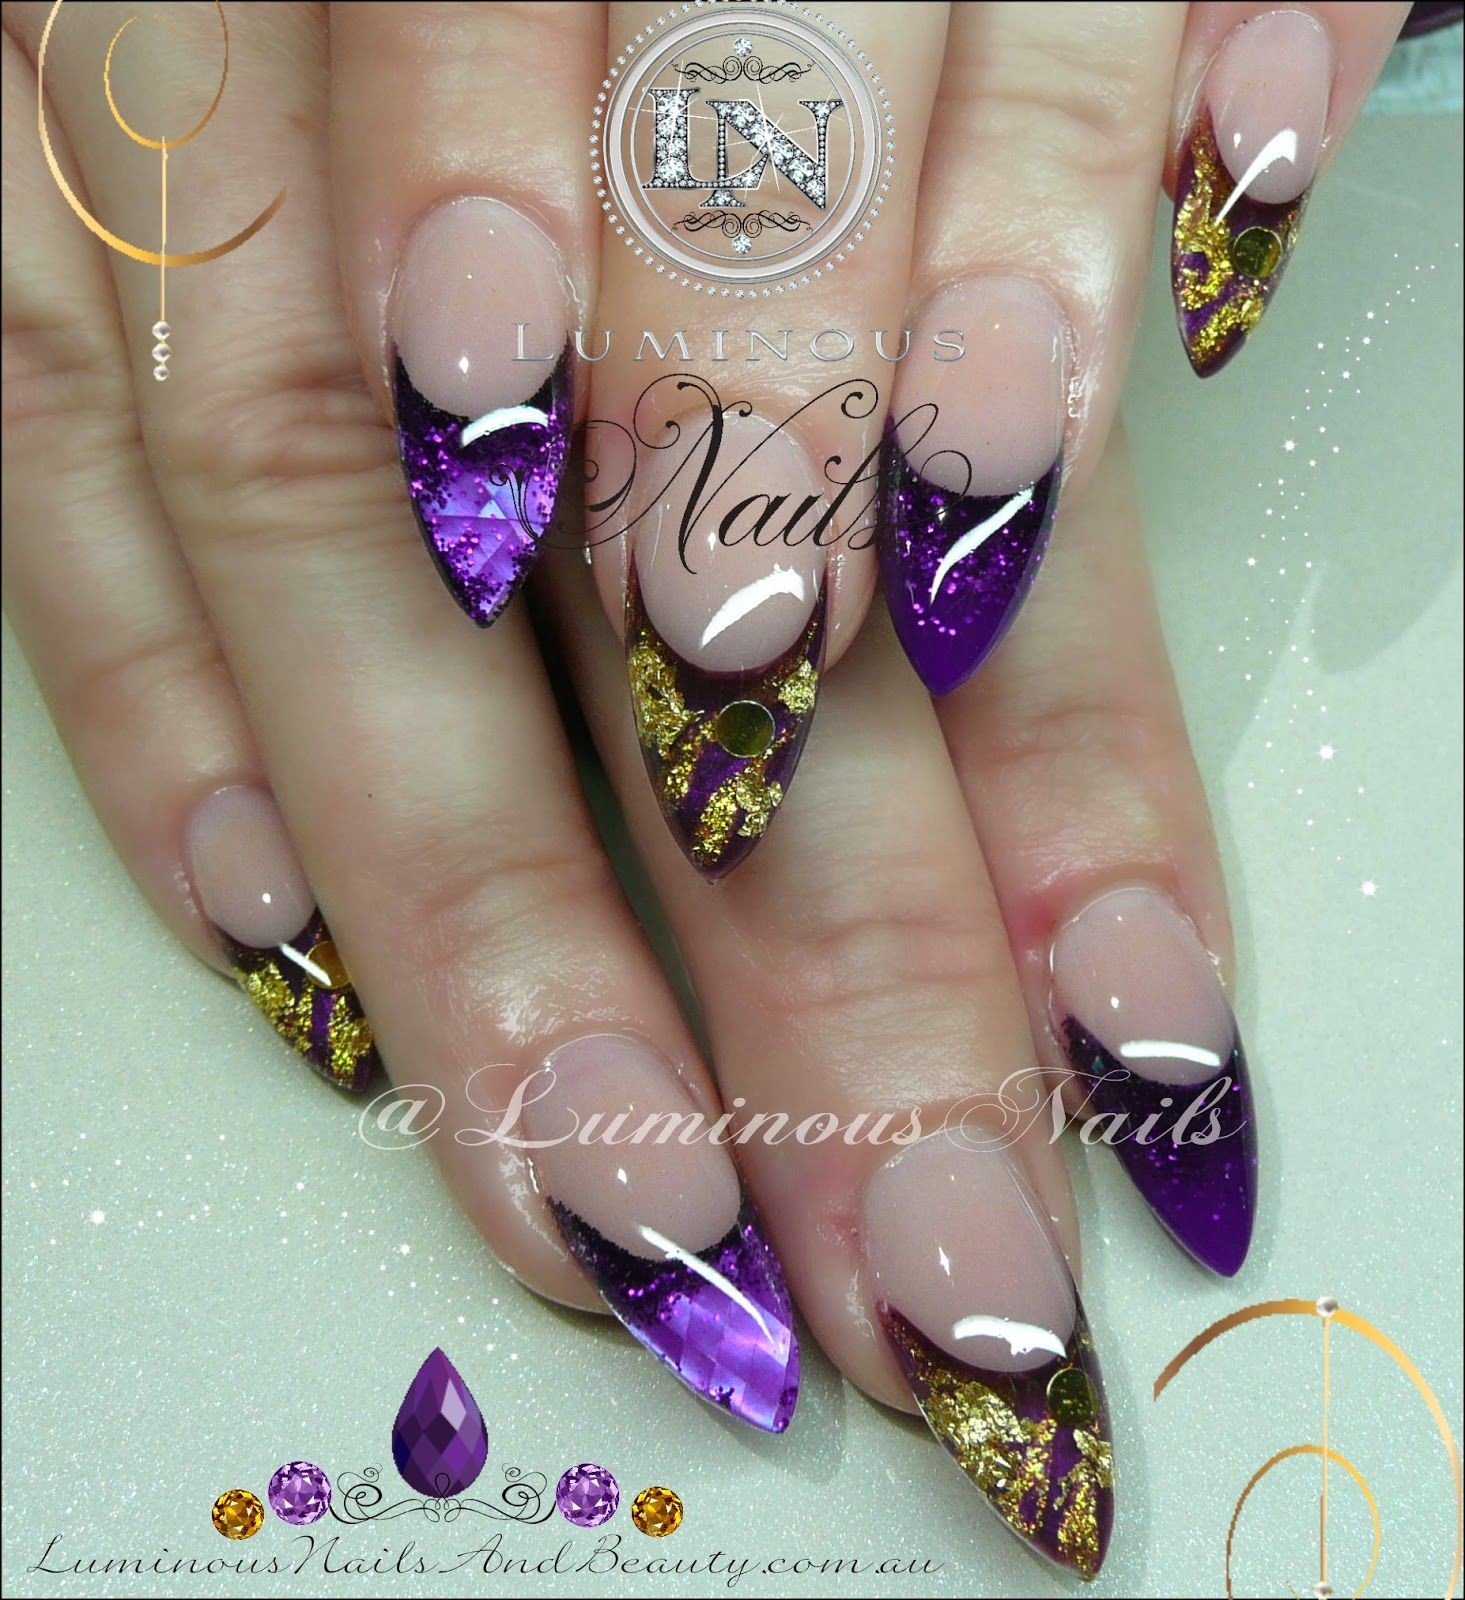 Luminous Nails: Purple Nails with Gold Leaf... | Nails | Pinterest ...